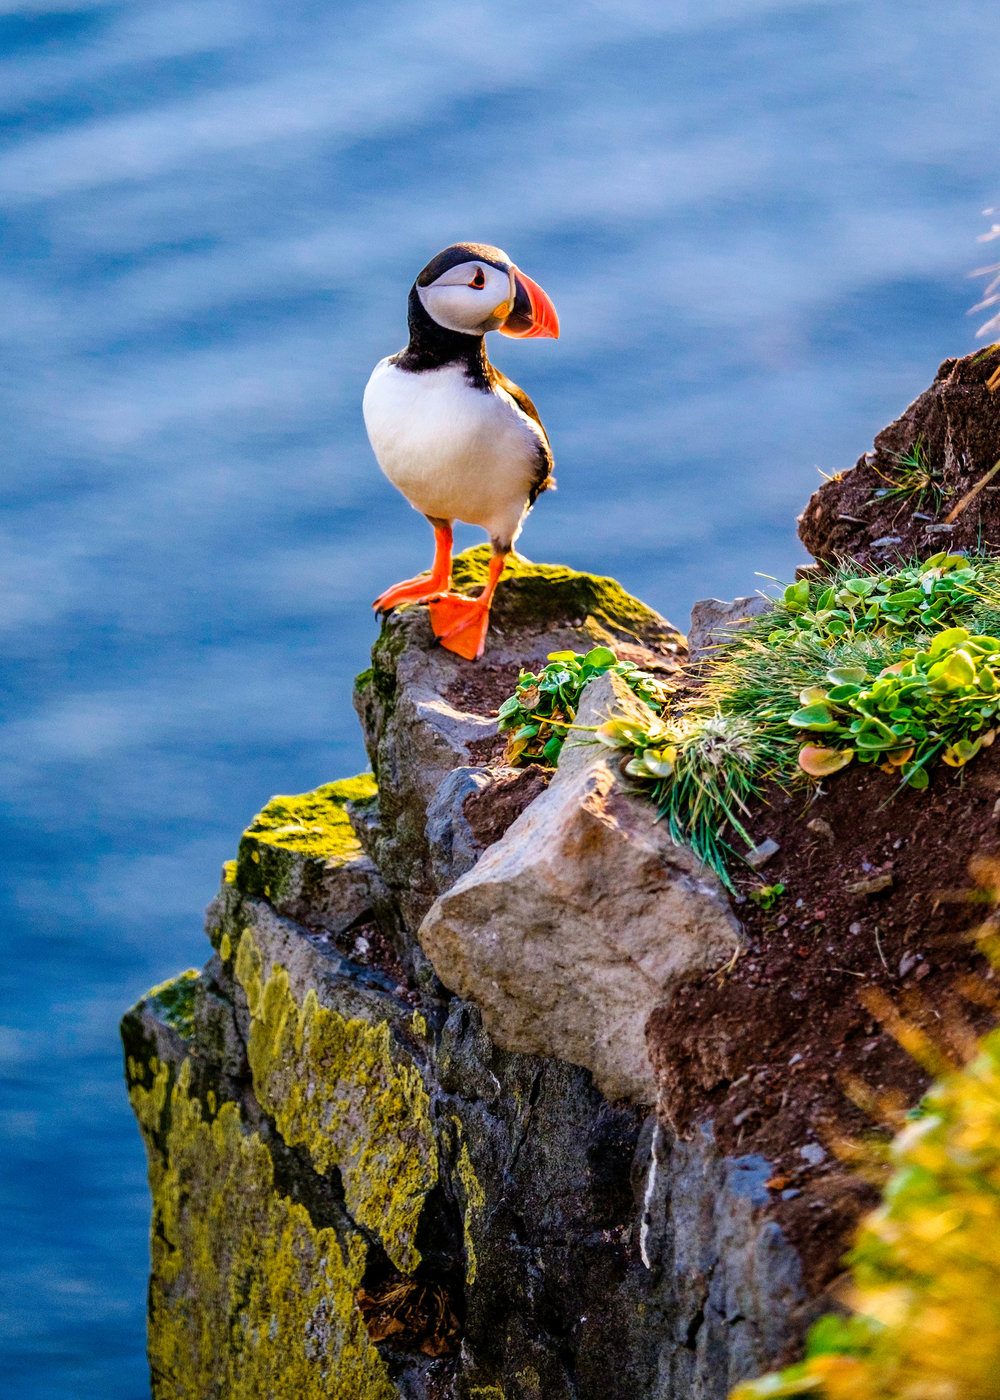 puffin_on_a_rock.jpg